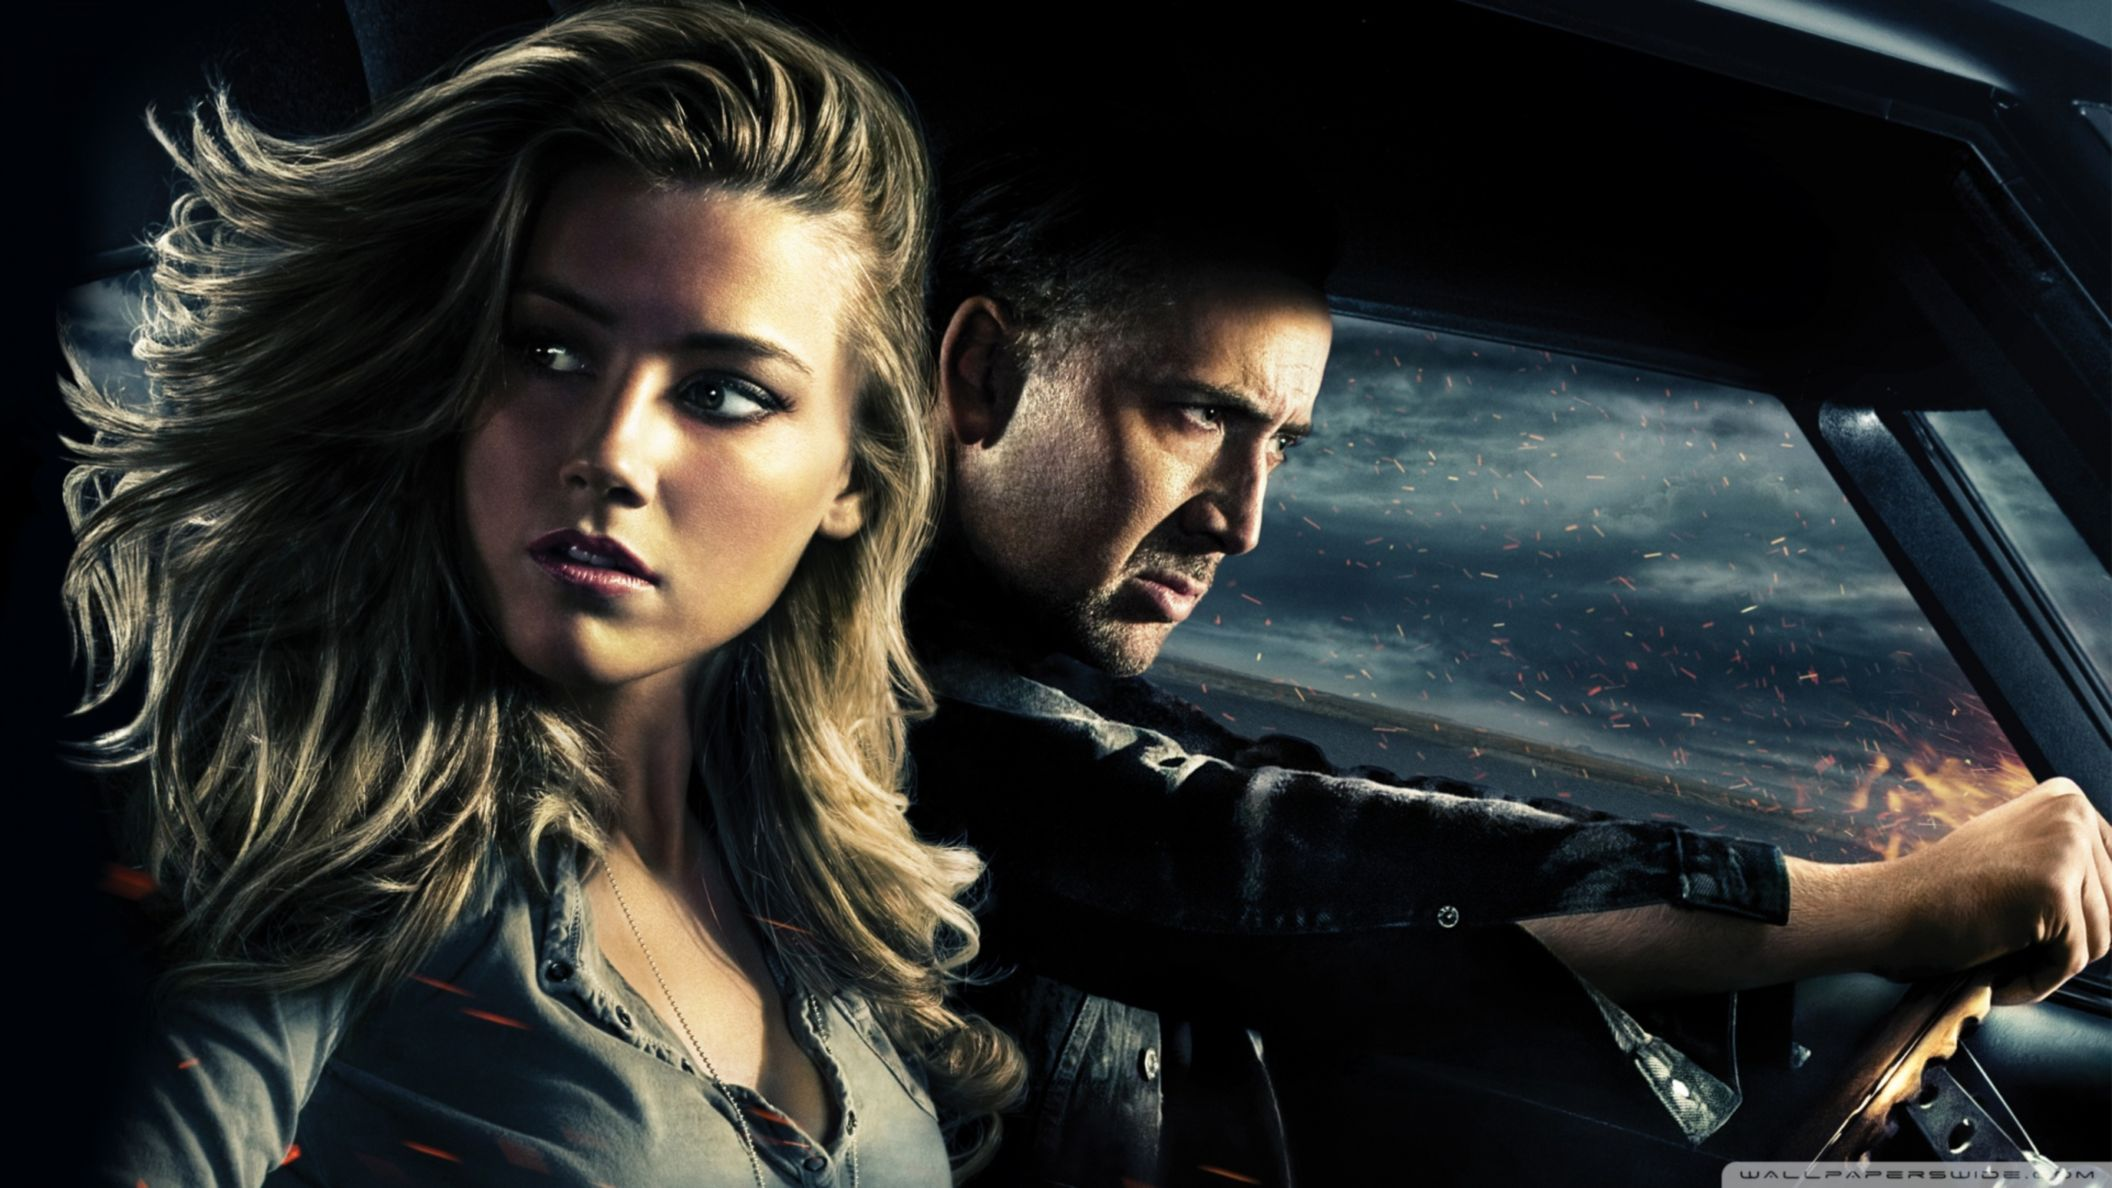 Download free HD Drive Angry Movie 1920×1080 Wallpaper, image